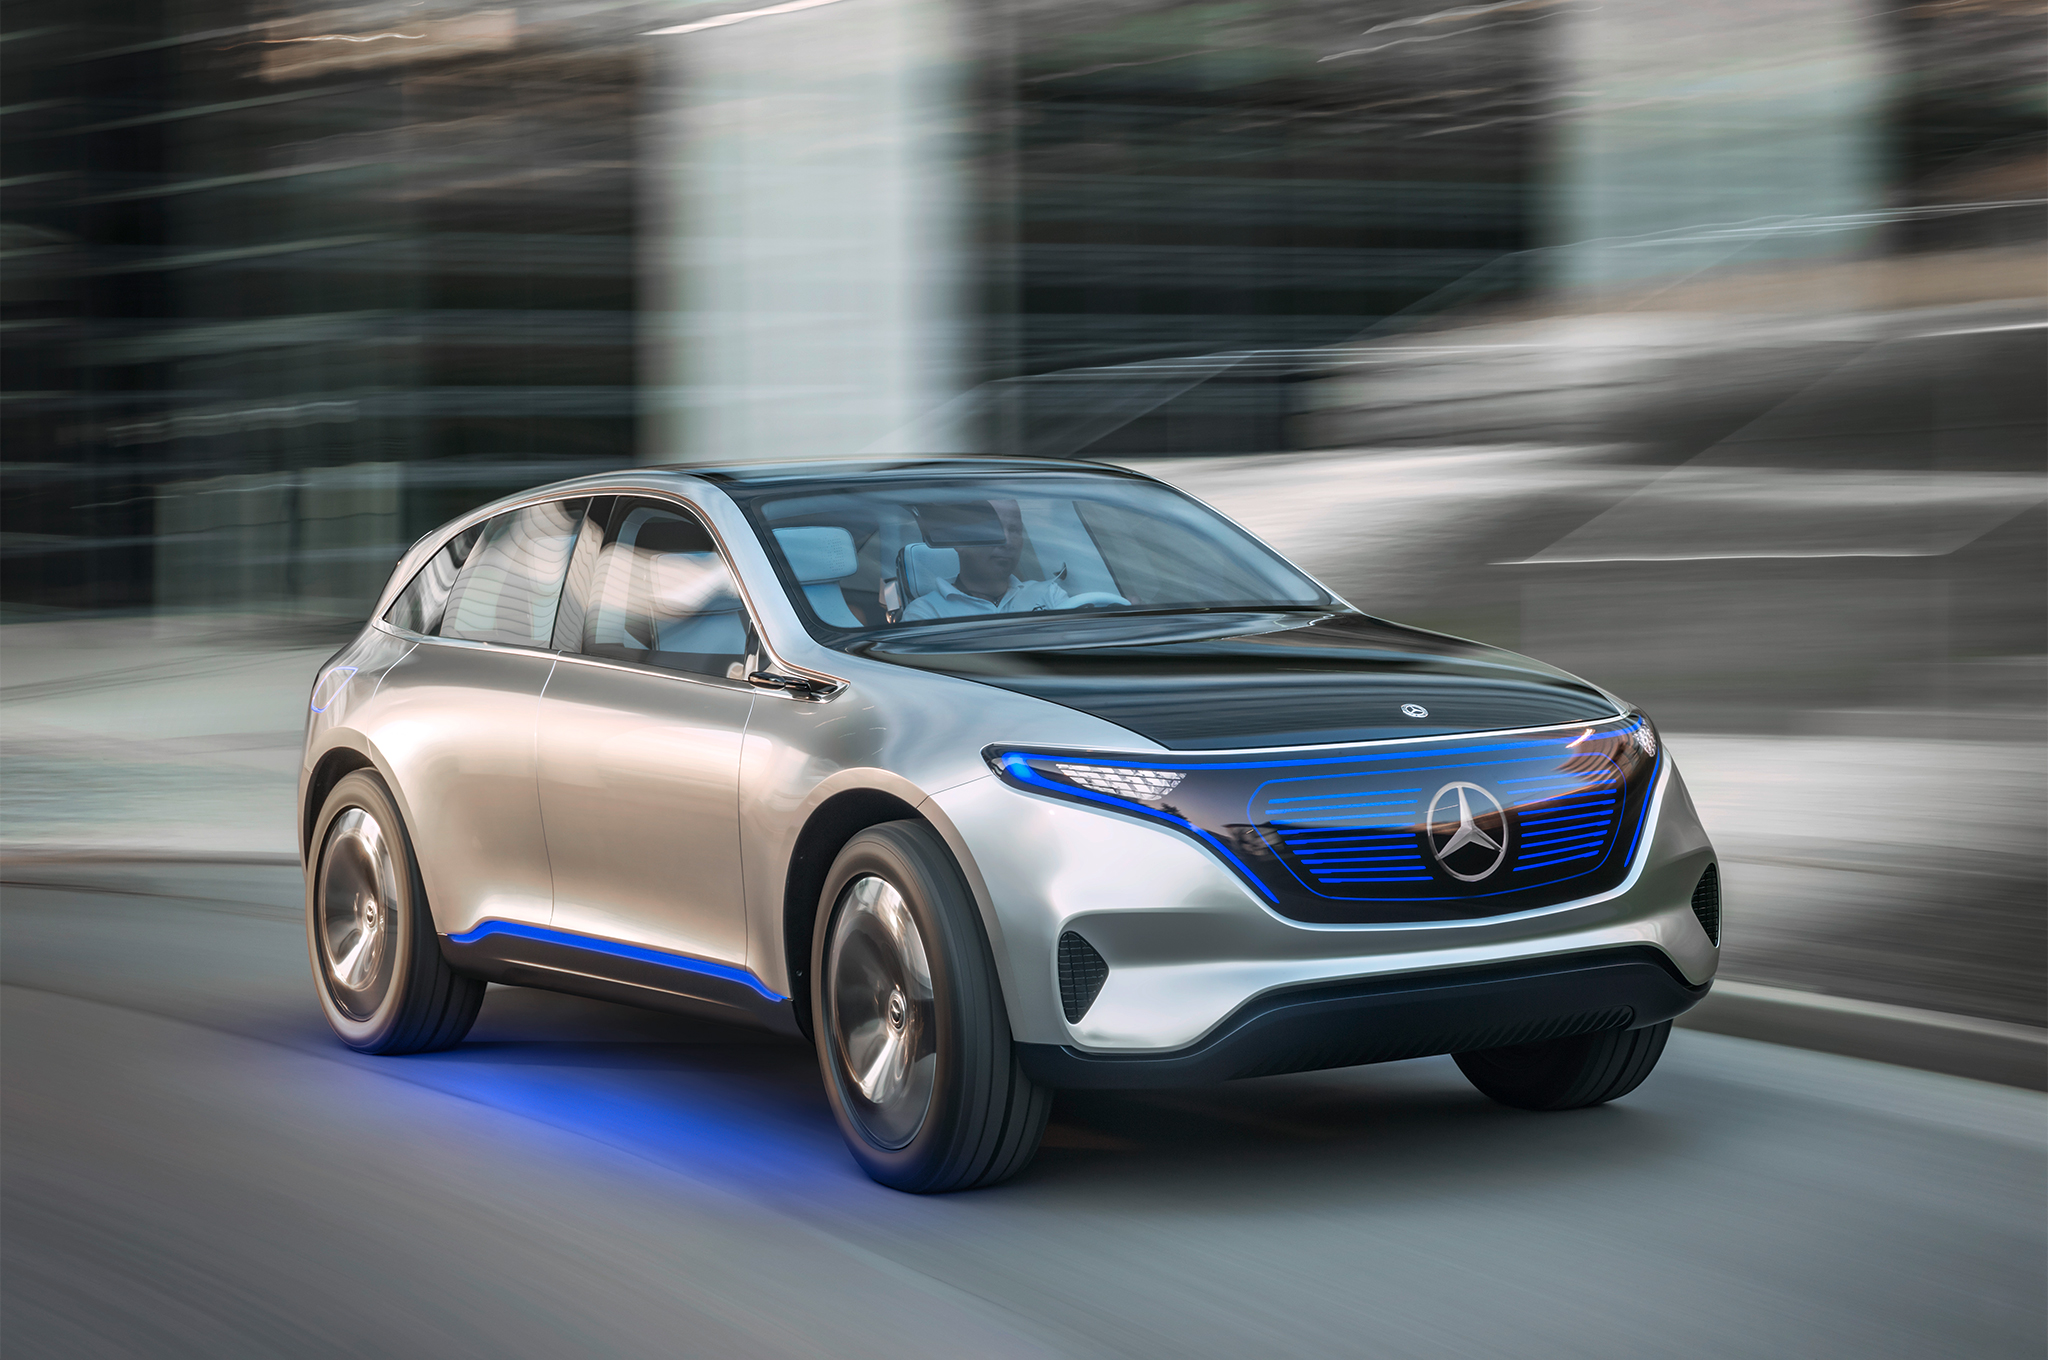 Mercedes Benz EQ Electric Car